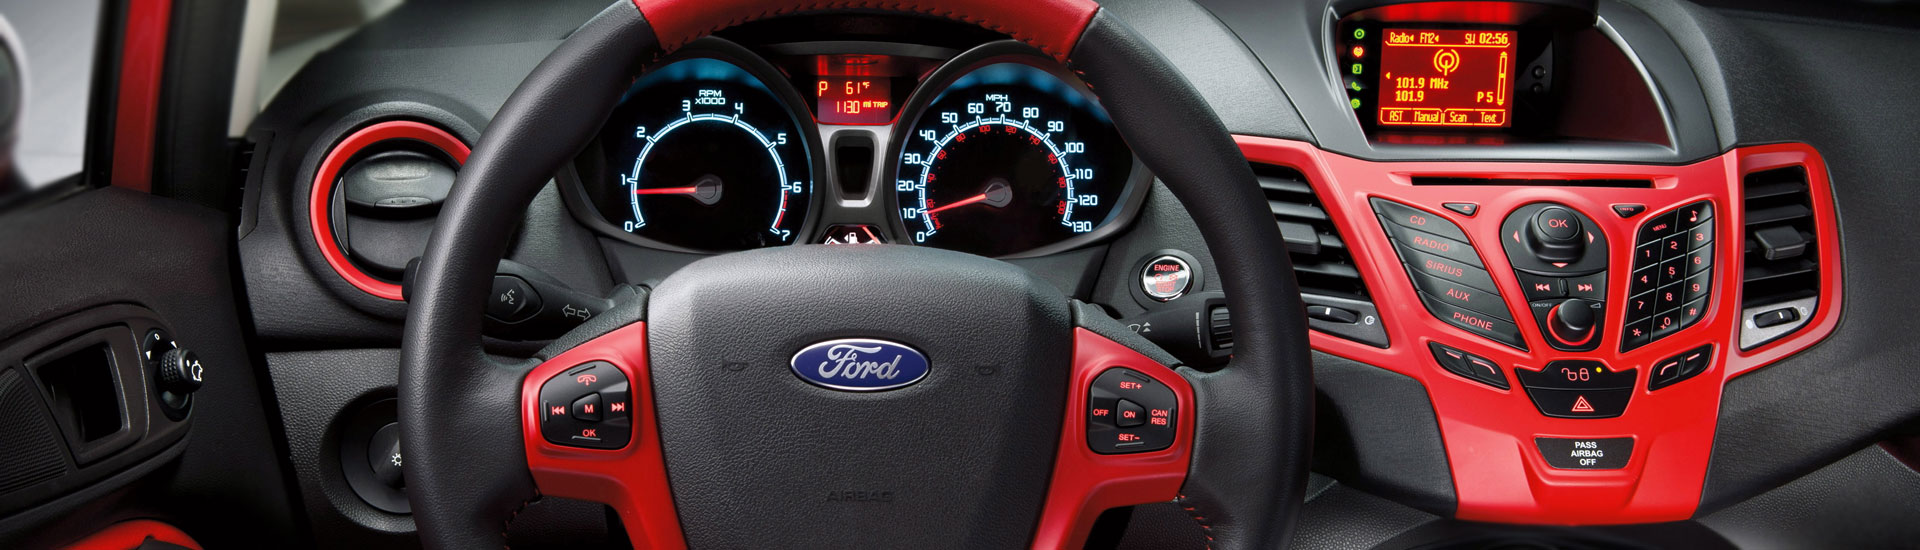 2004 Ford Ranger Custom Dash Kits